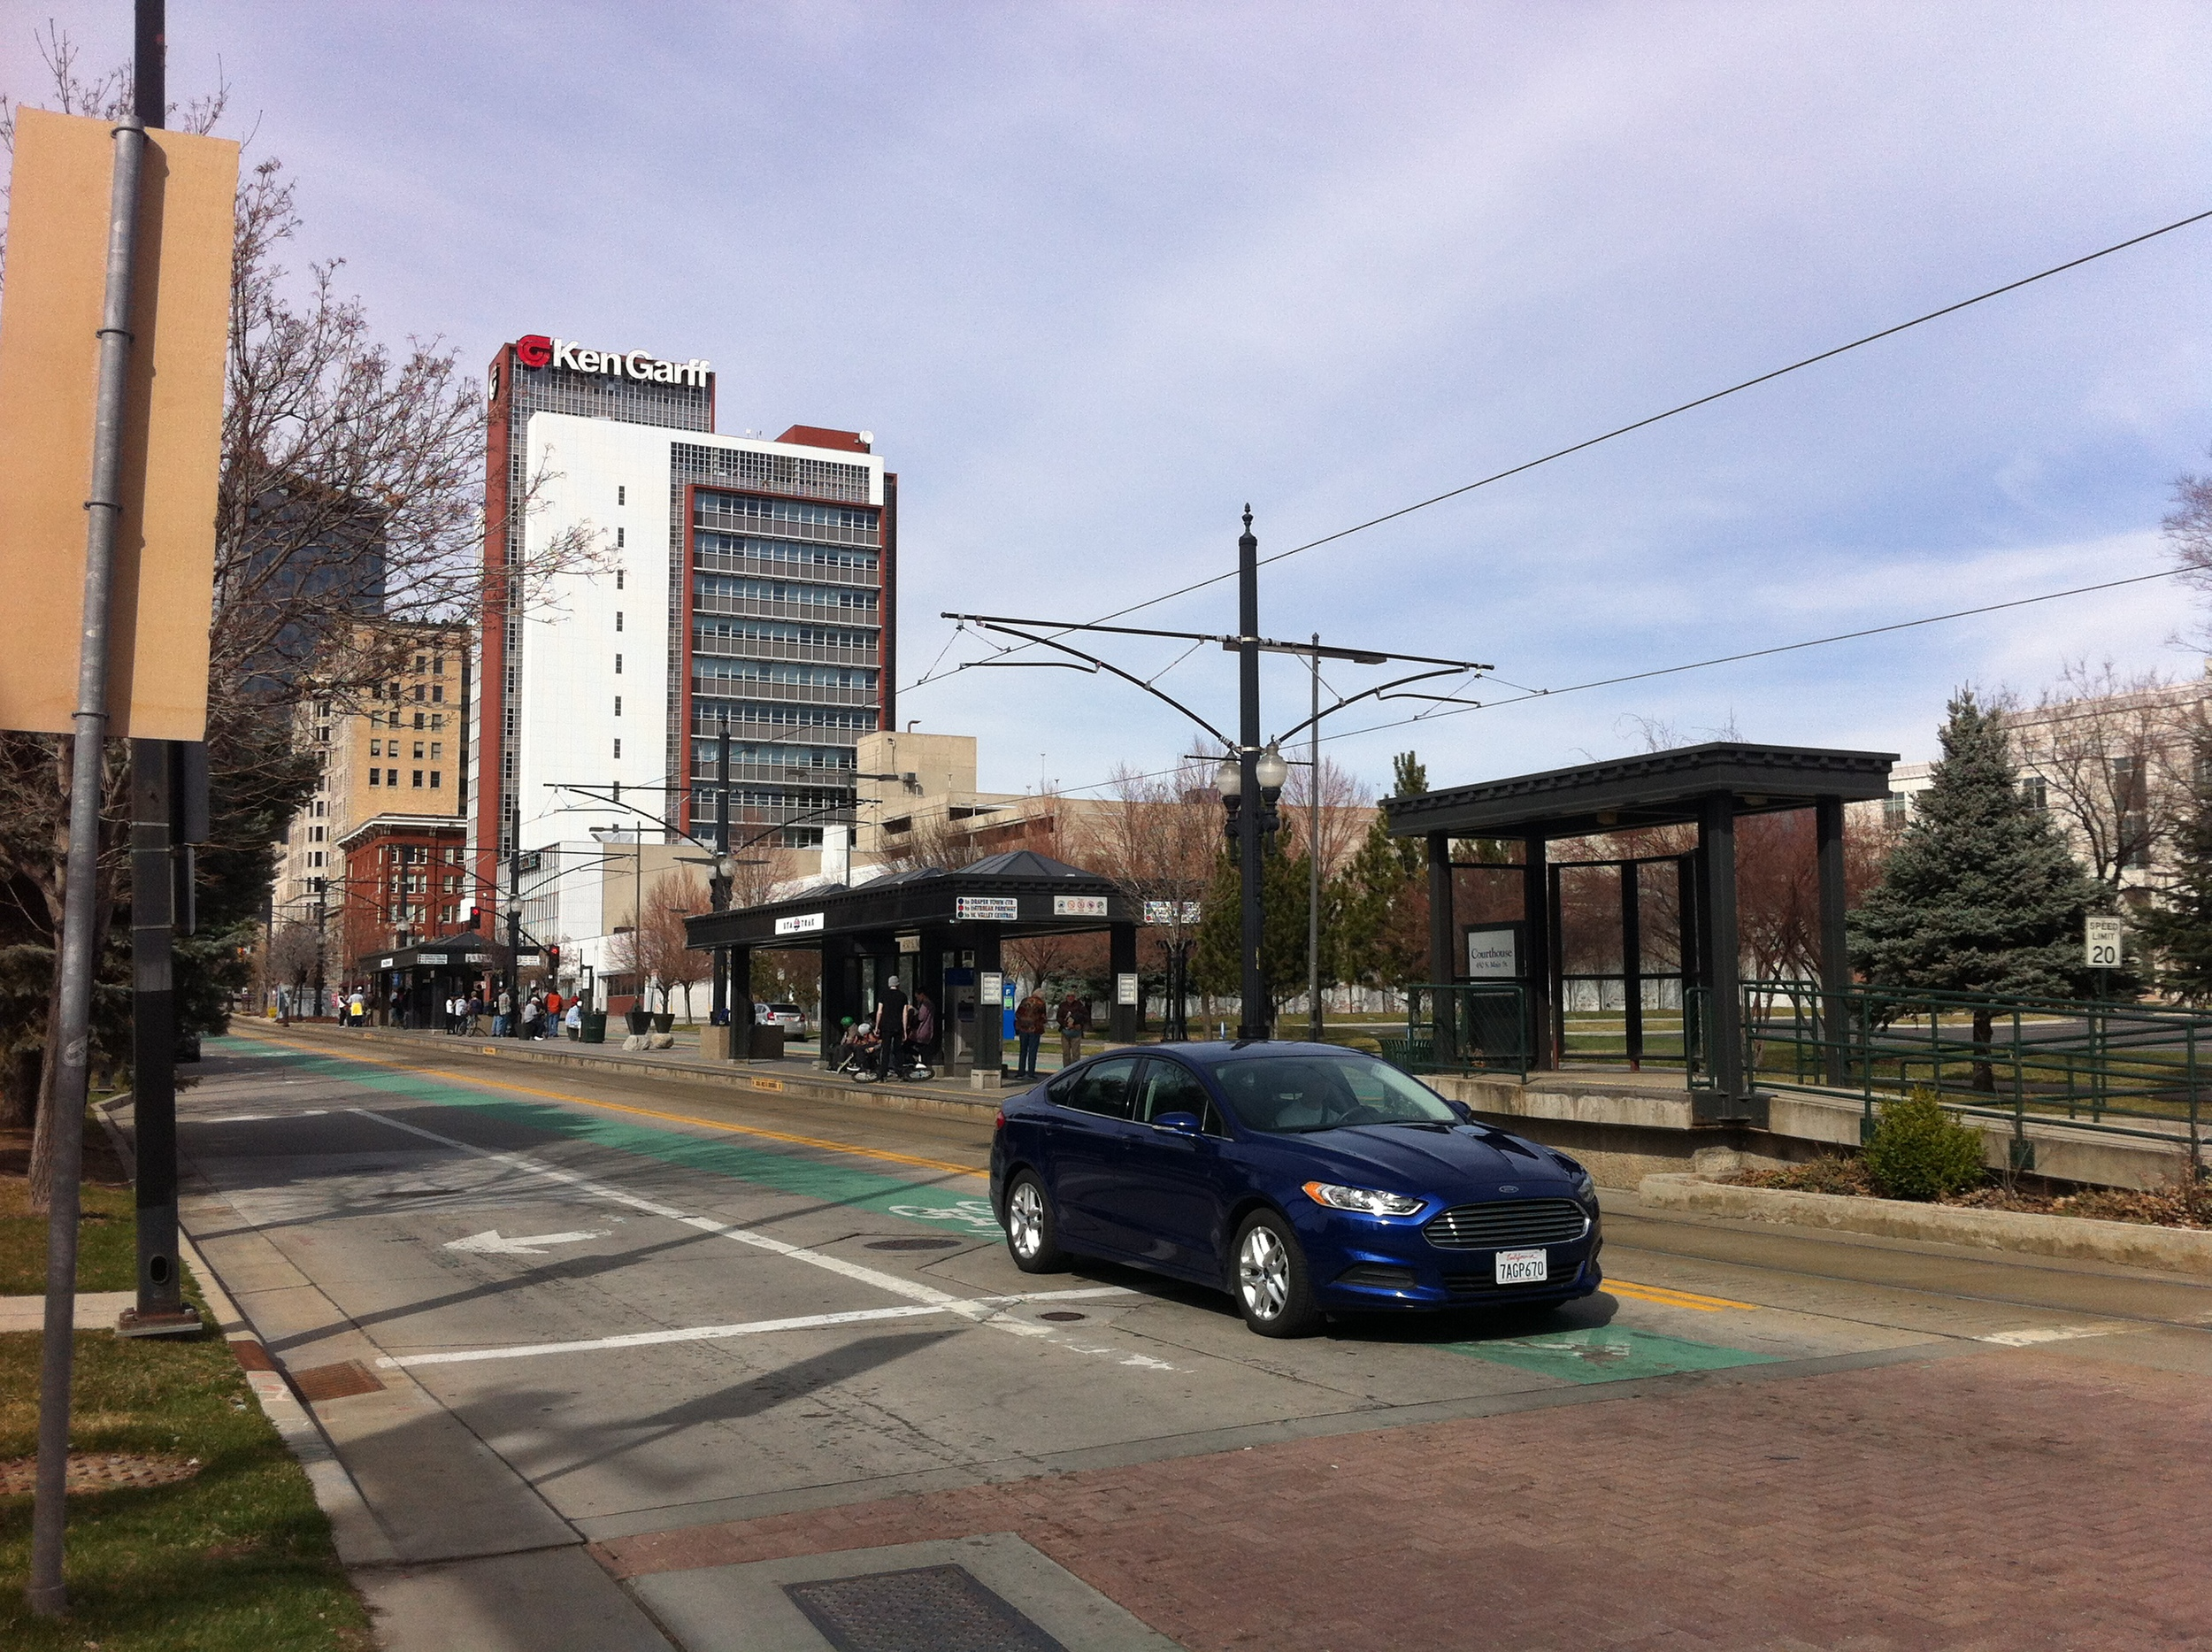 Salt Lake City allows cars, LRT and cyclist to share the road.